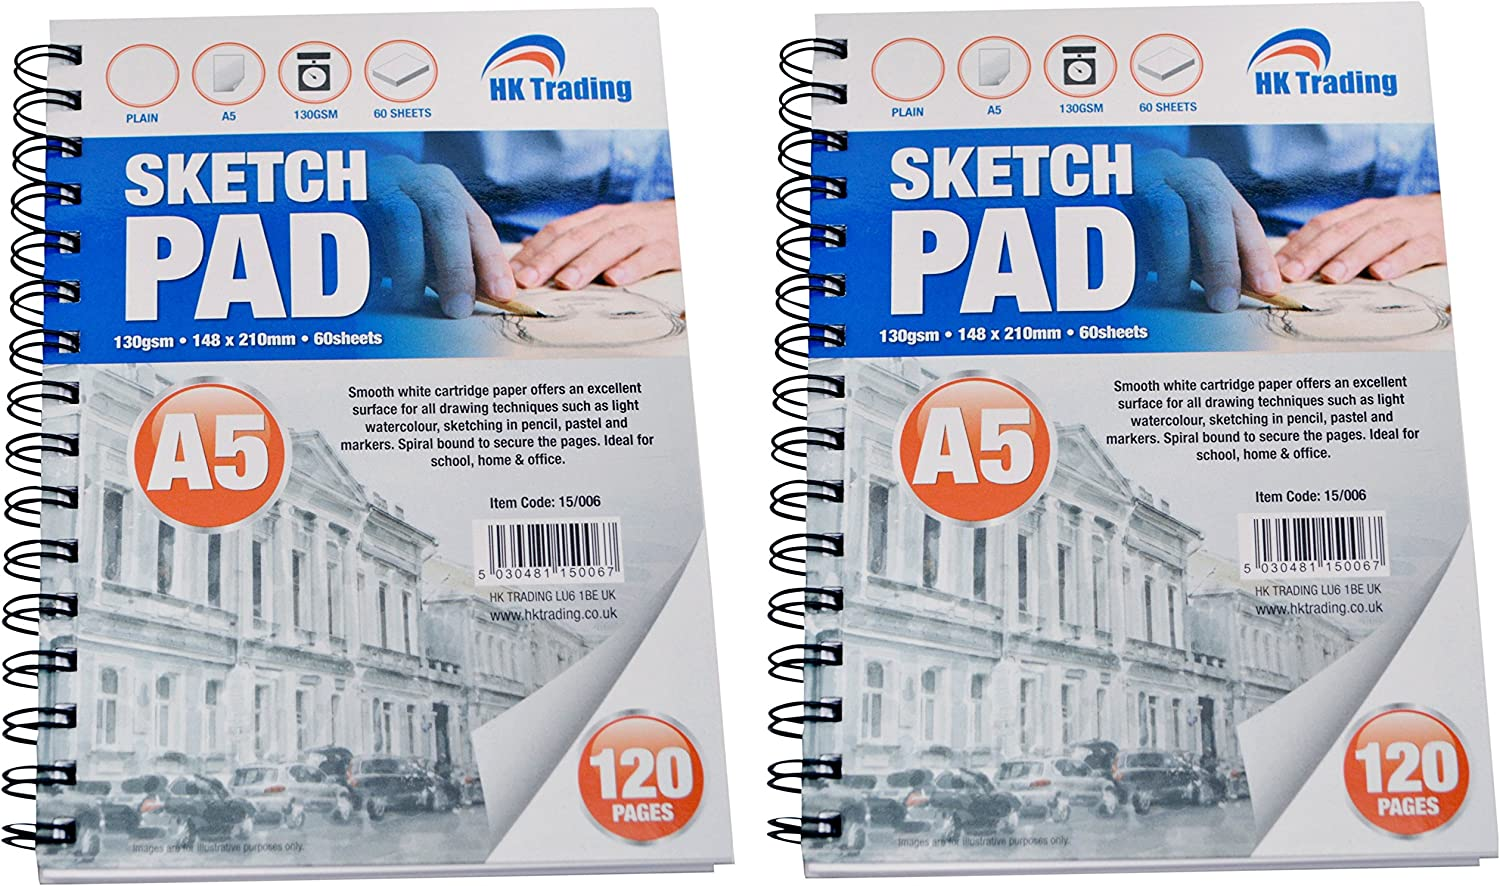 2 x A5 DRAWING SKETCH PAD - - - 130gsm 60 sheets perforated thick cartridge paper - FREE DELIVERY B01AUYNQH4 | Einzigartig